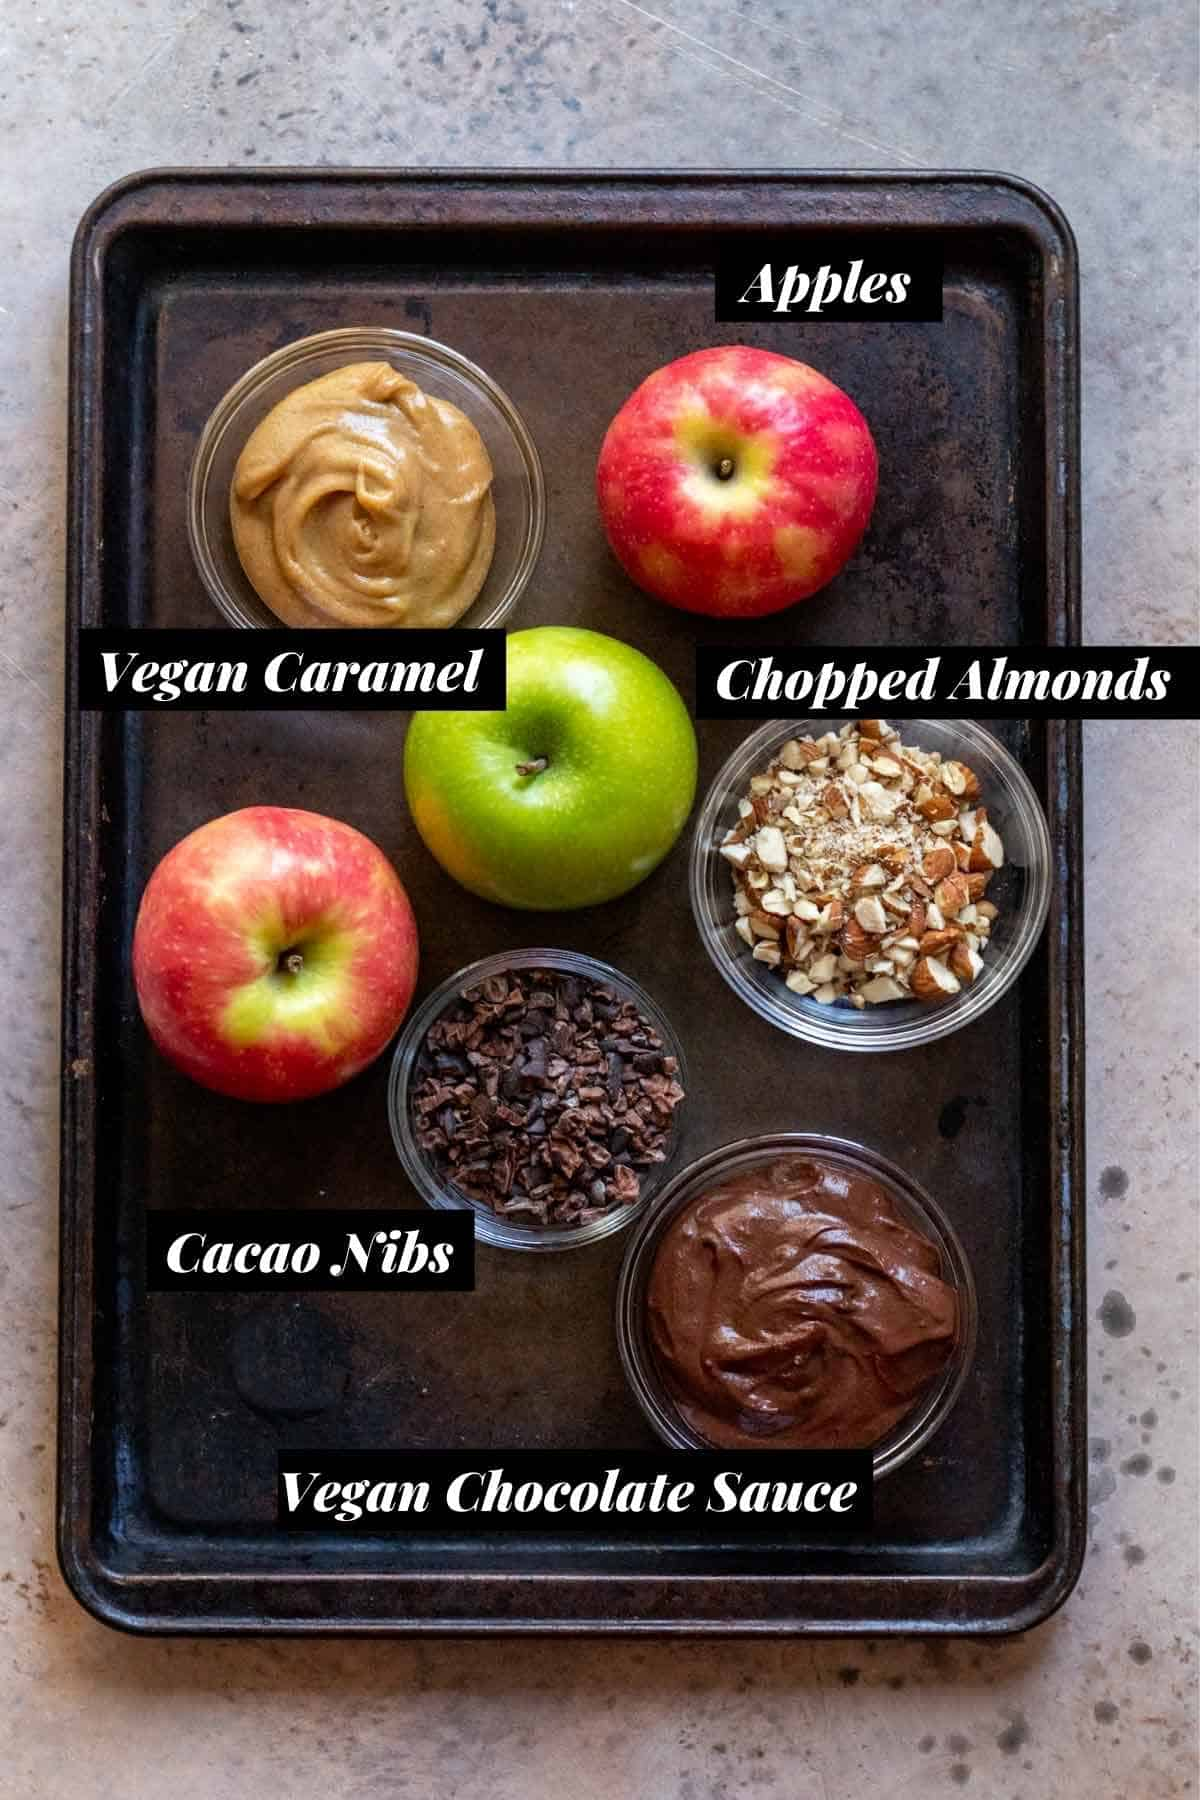 Ingredients measured into individual glass bowls and labeled on cookie sheet.